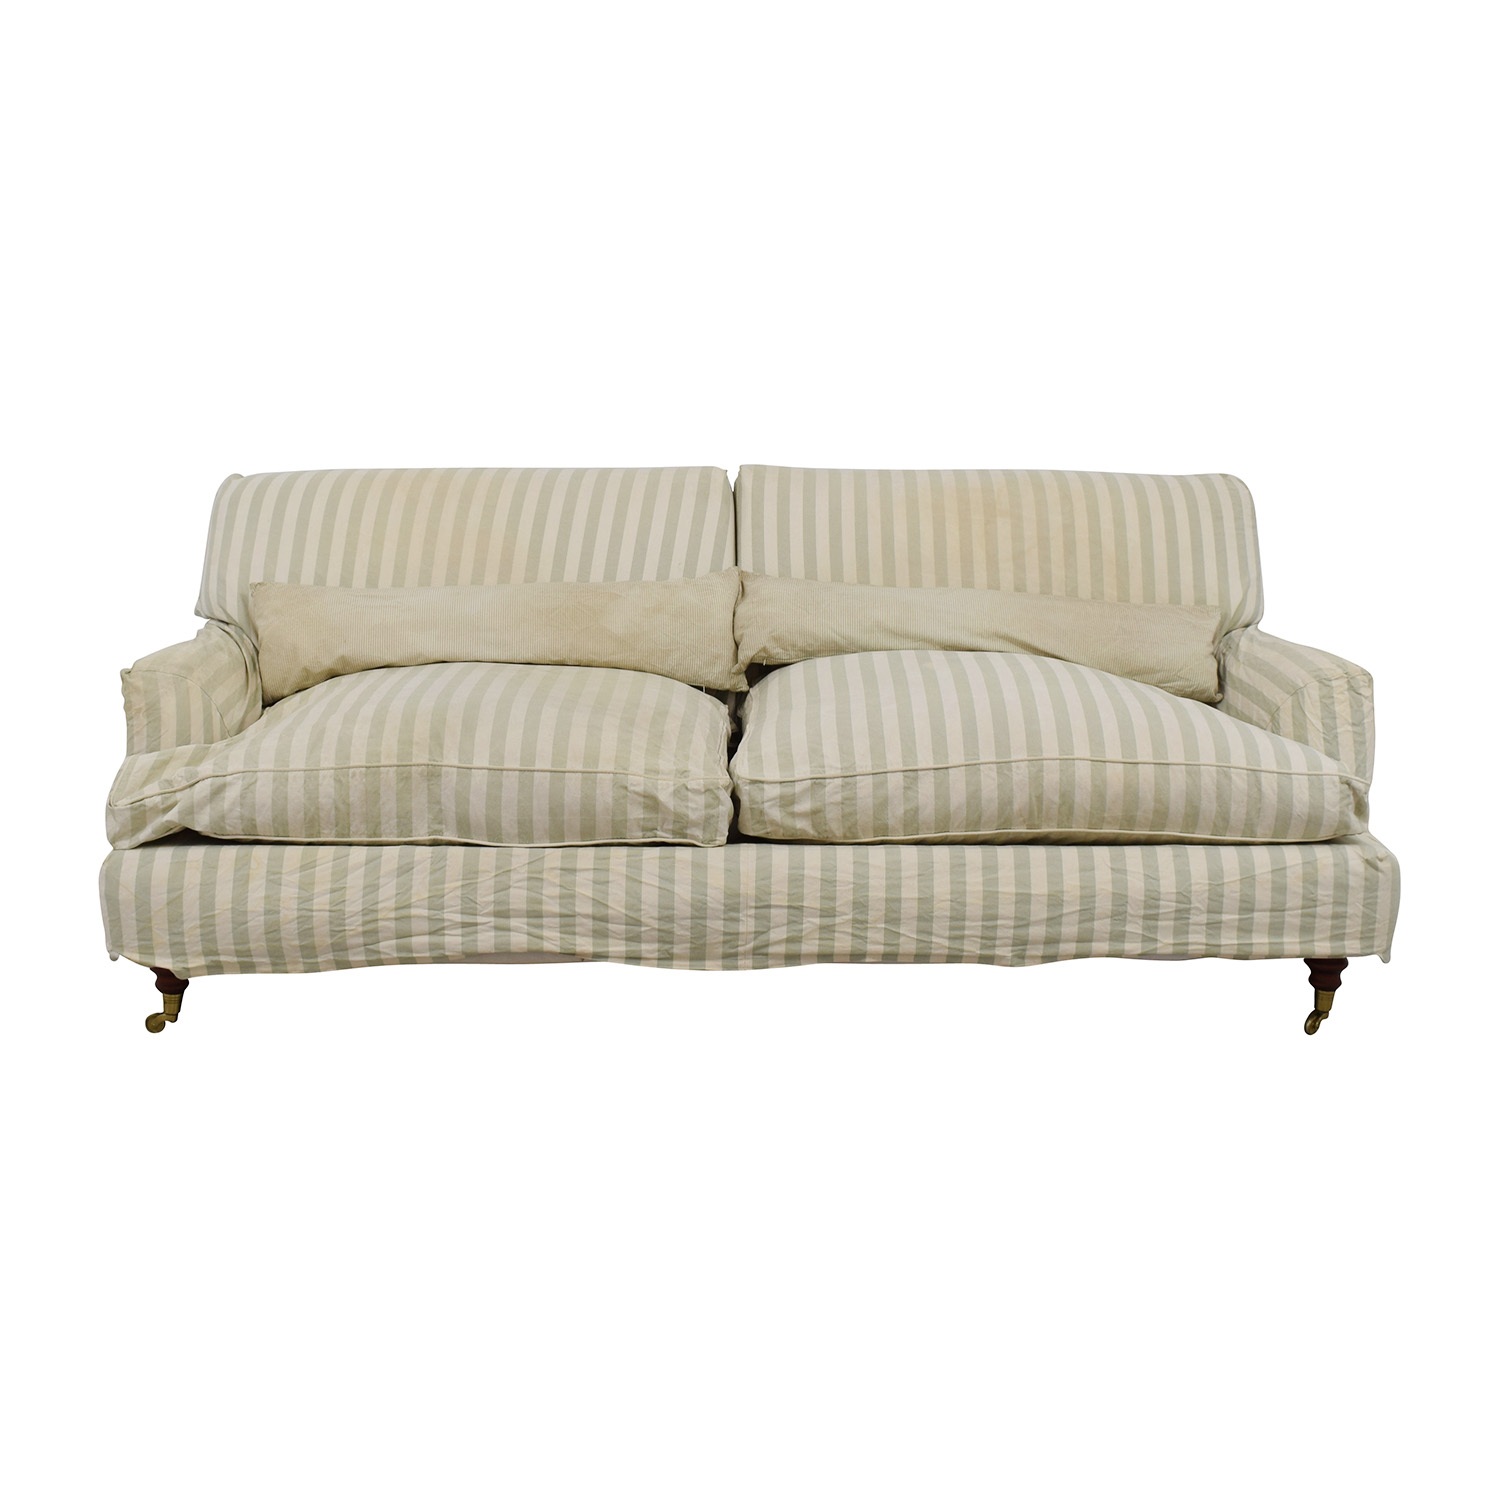 Shop Green And White Striped English Roll Arm Sofa Classic Sofas ...